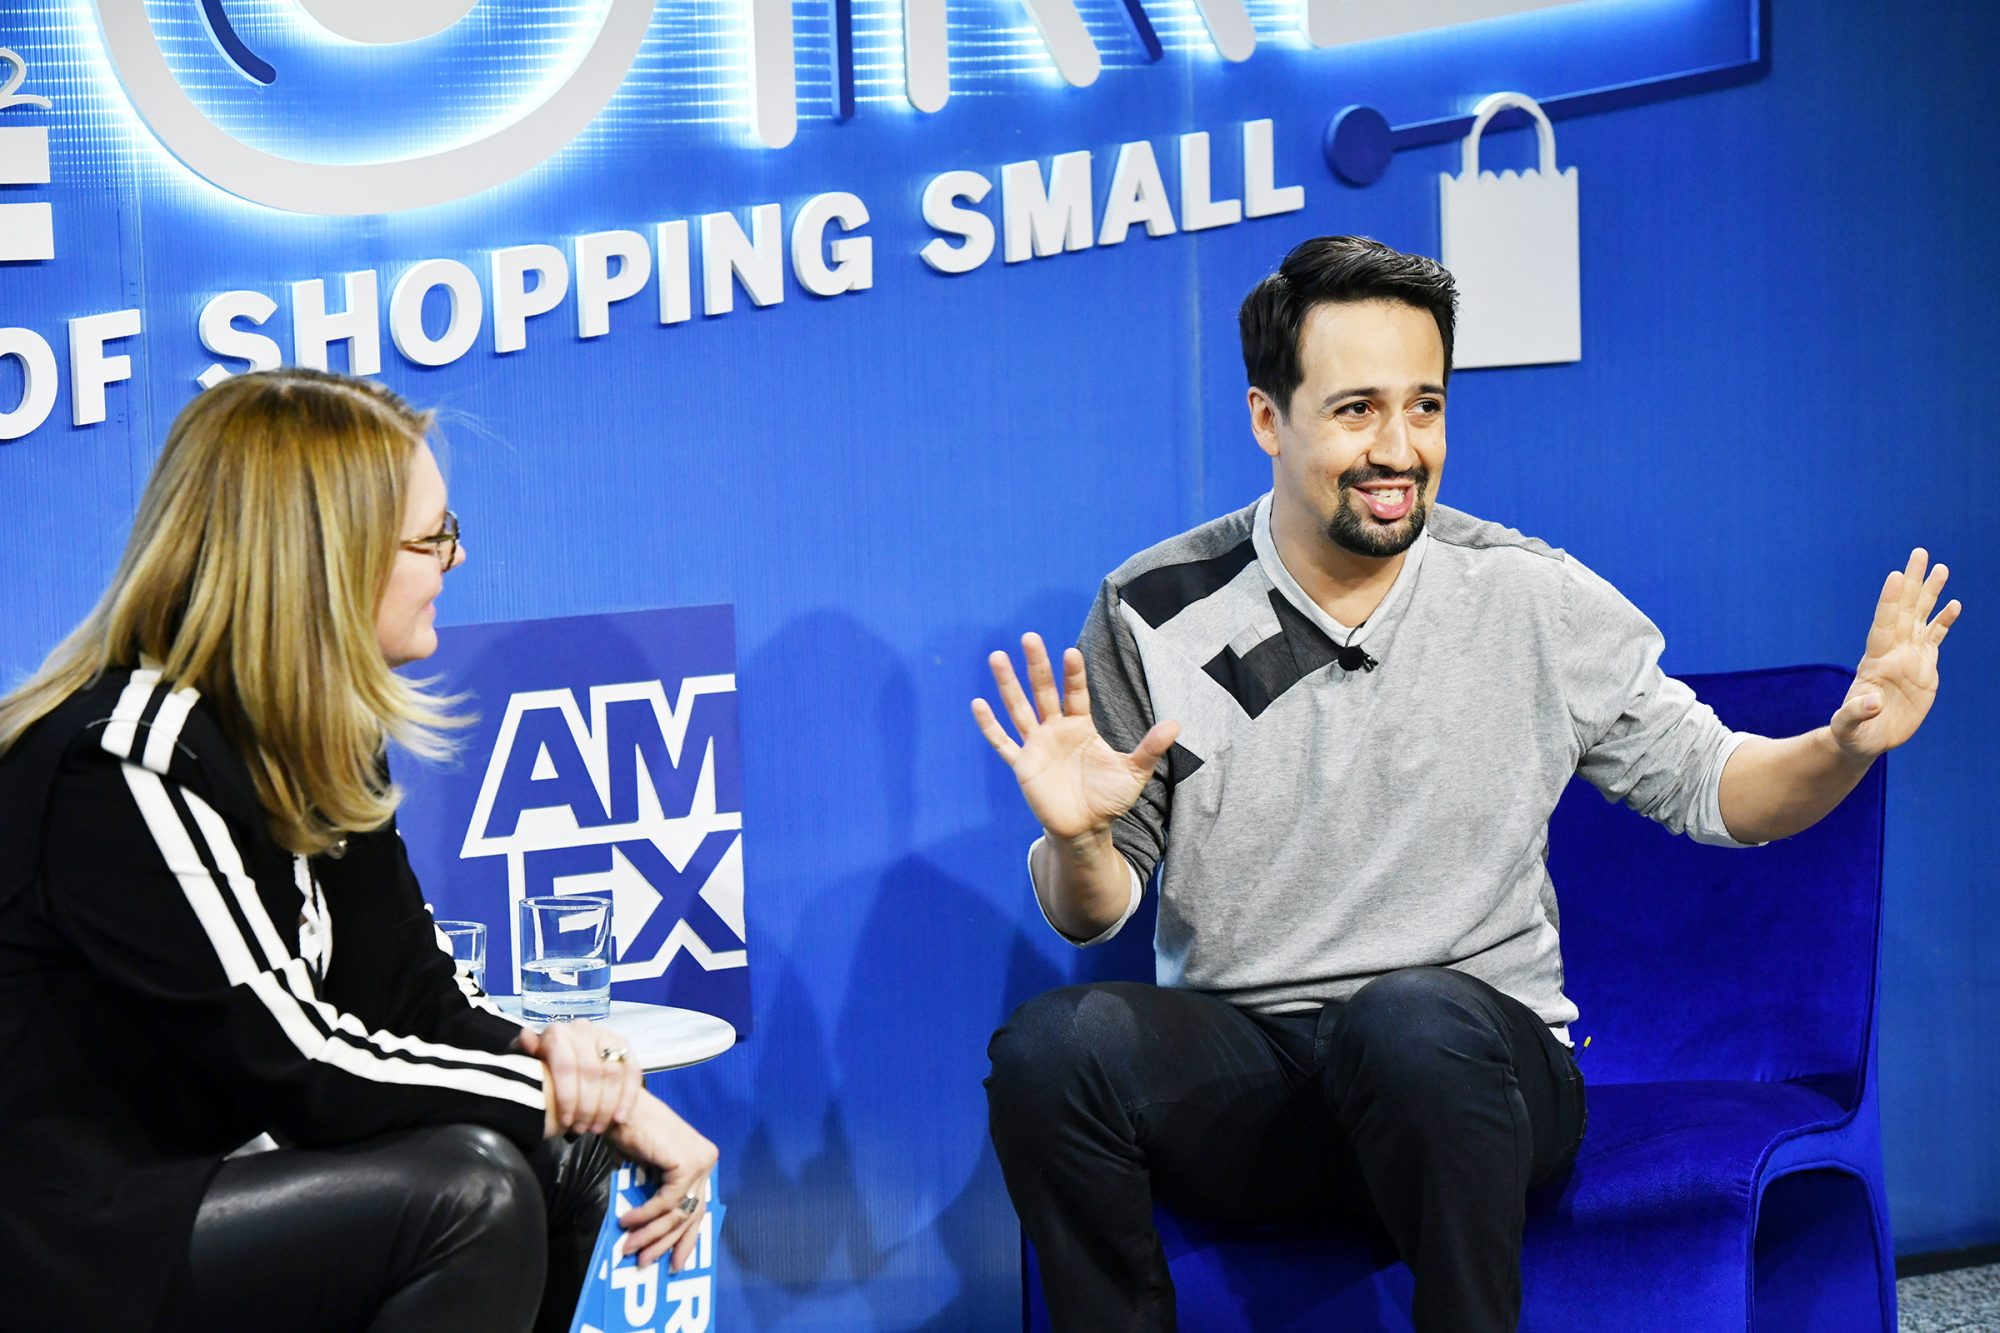 American Express kicks off the 10th annual Small Business Saturday with a fireside chat hosted by Elizabeth Rutledge and Lin-Manuel Miranda at the Big F1uture Of Shopping Small Experience on November 21, 2019 in New York City